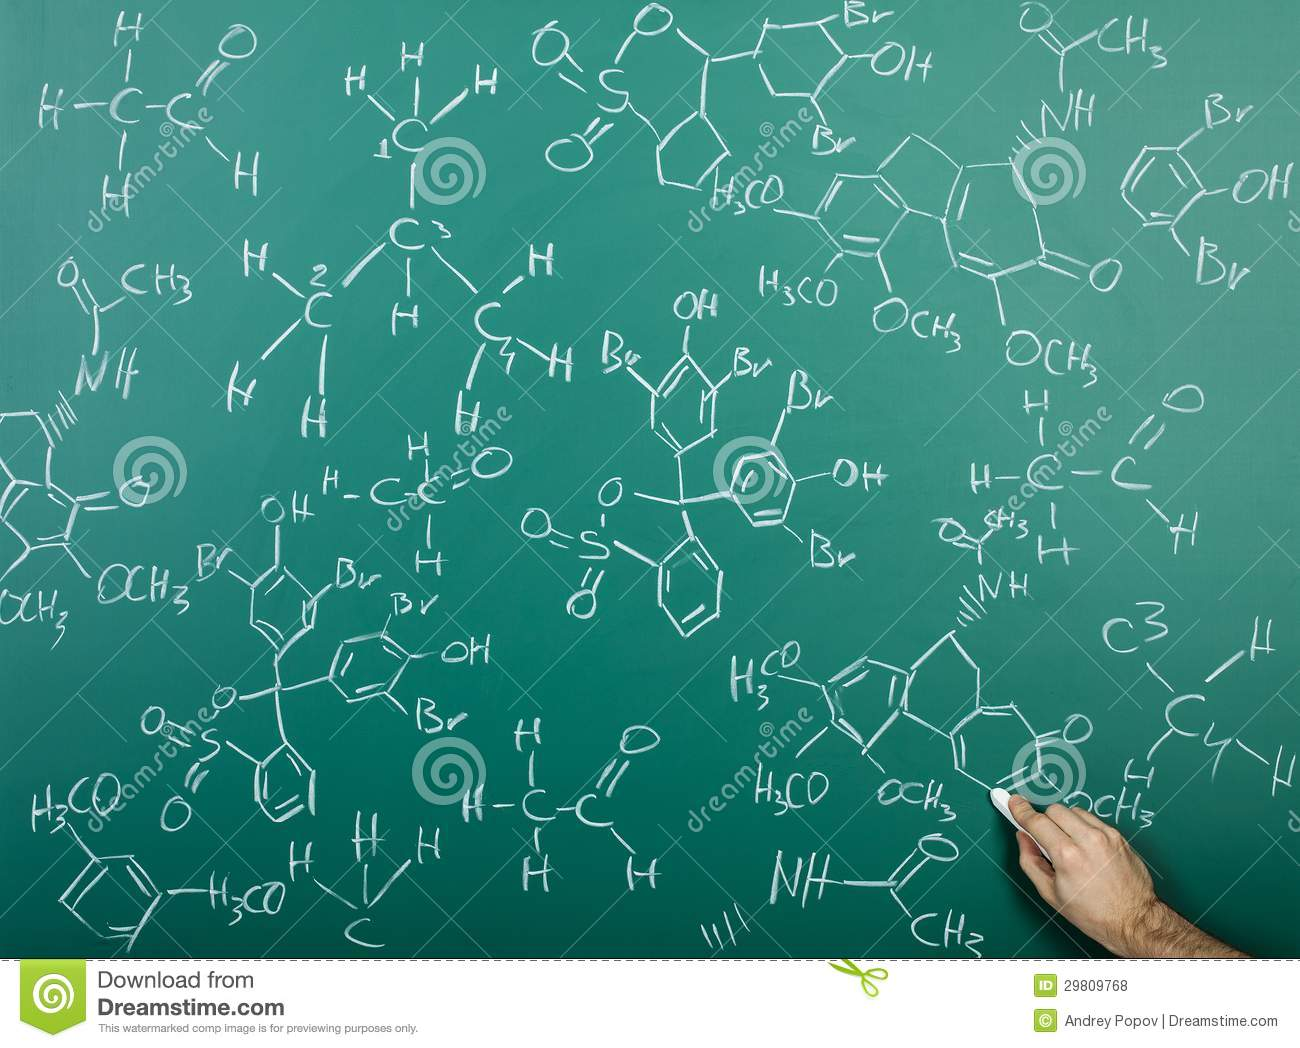 copper atom diagram pc keyboard wiring organic chemical formulas on chalkboard stock photo - image of chemistry, hold: 29809768